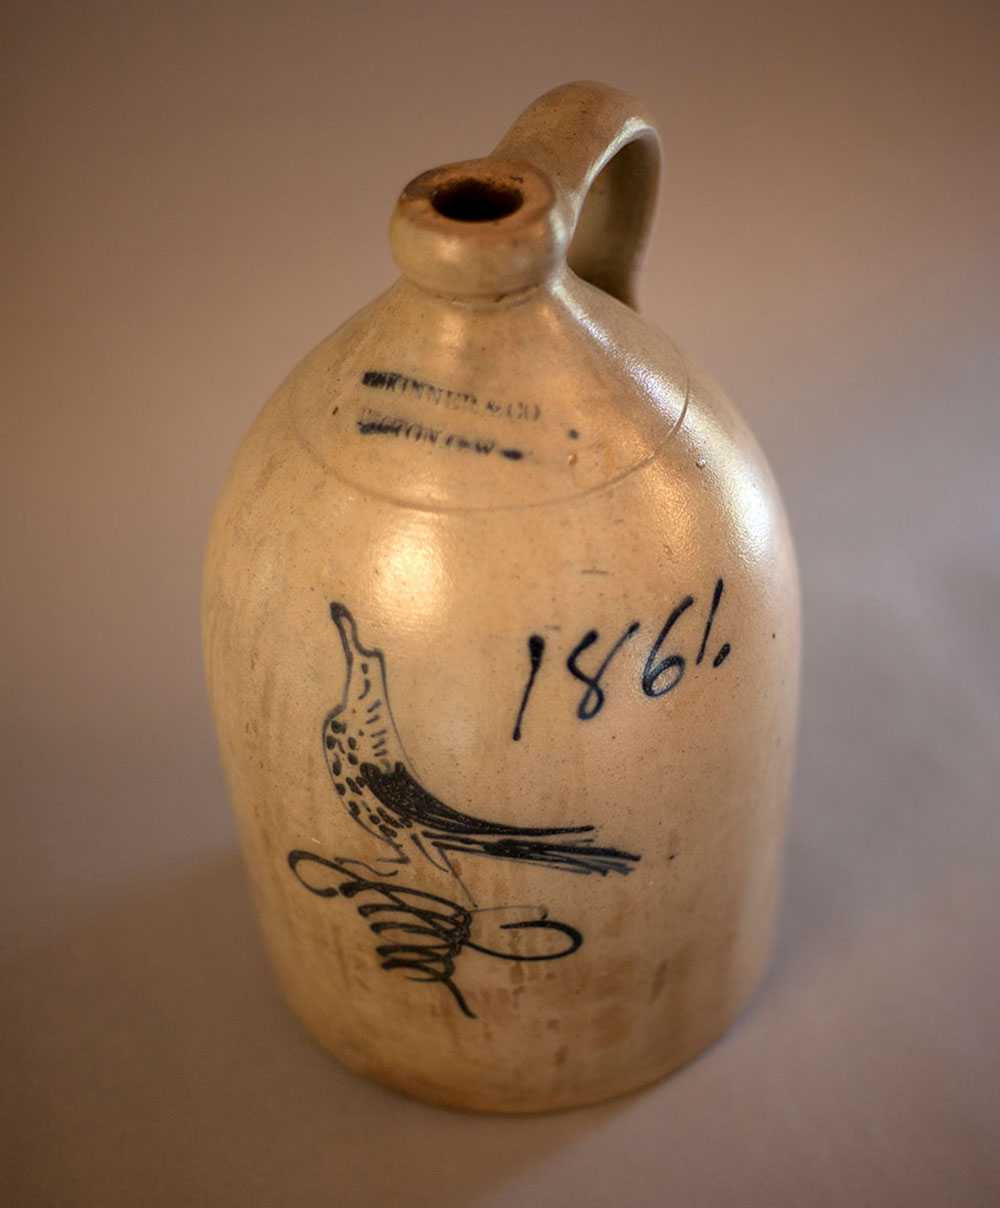 Flashback-February-PEC-ceramic-jug-1000px.jpg#asset:28624